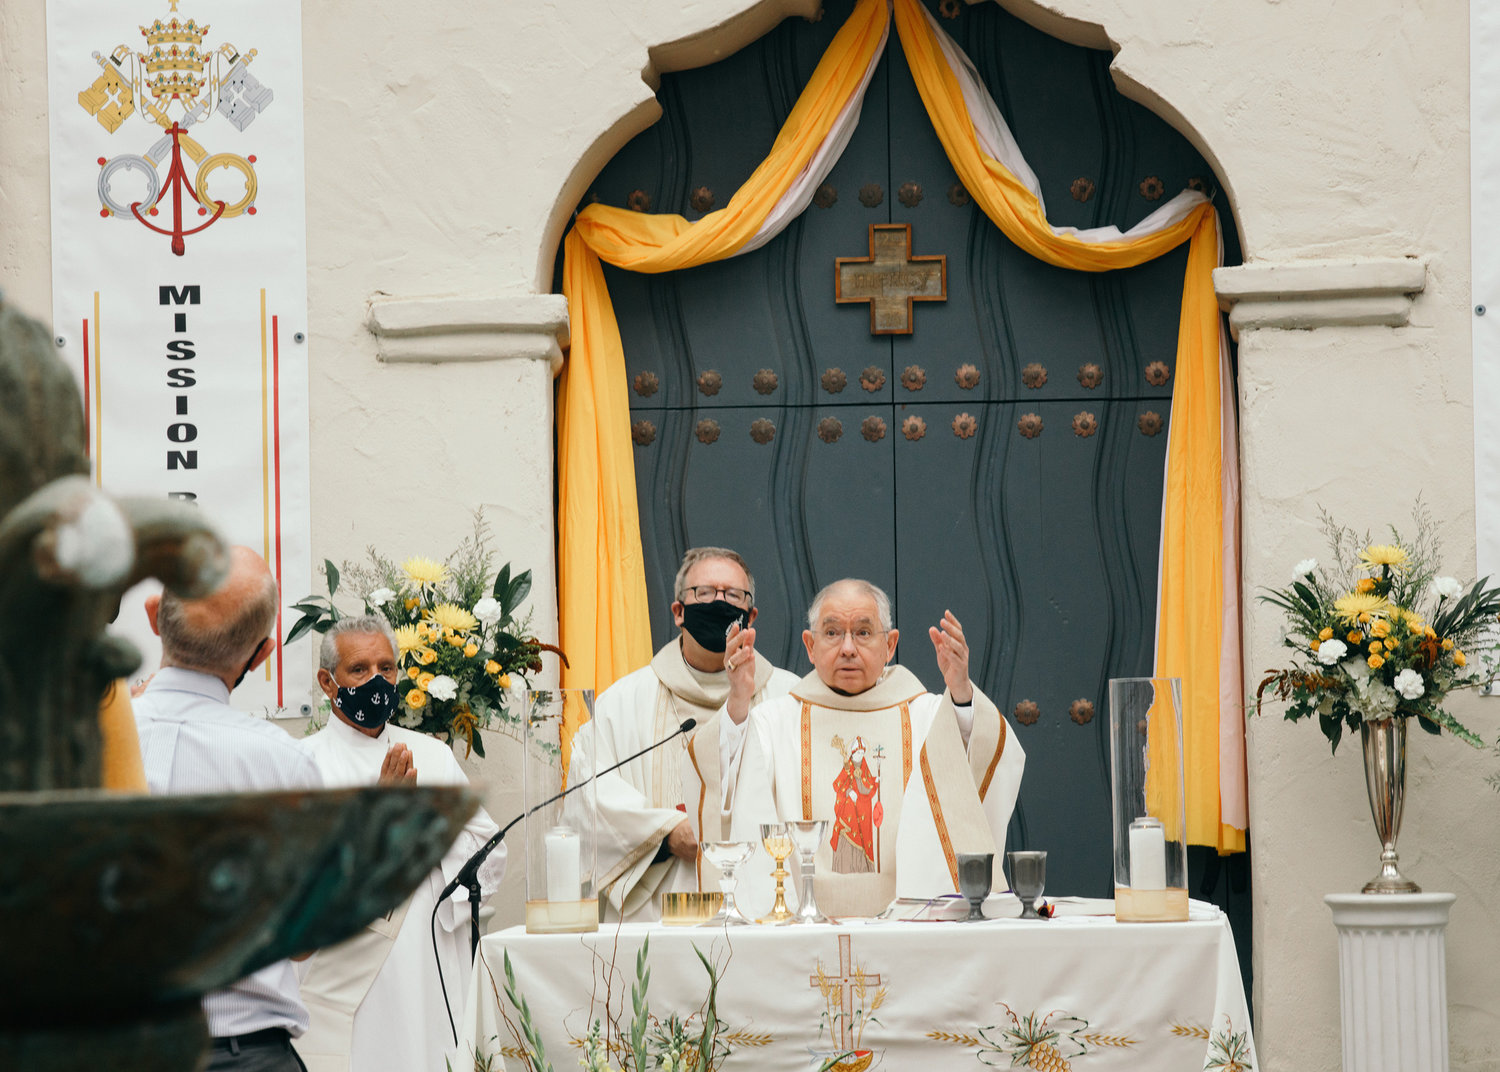 Archbishop Jose H. Gomez of Los Angeles, president of the U.S. Conference of Catholic Bishops, celebrates Mass at the new Mission Basilica San Buenaventura in Ventura, Calif., July 15.